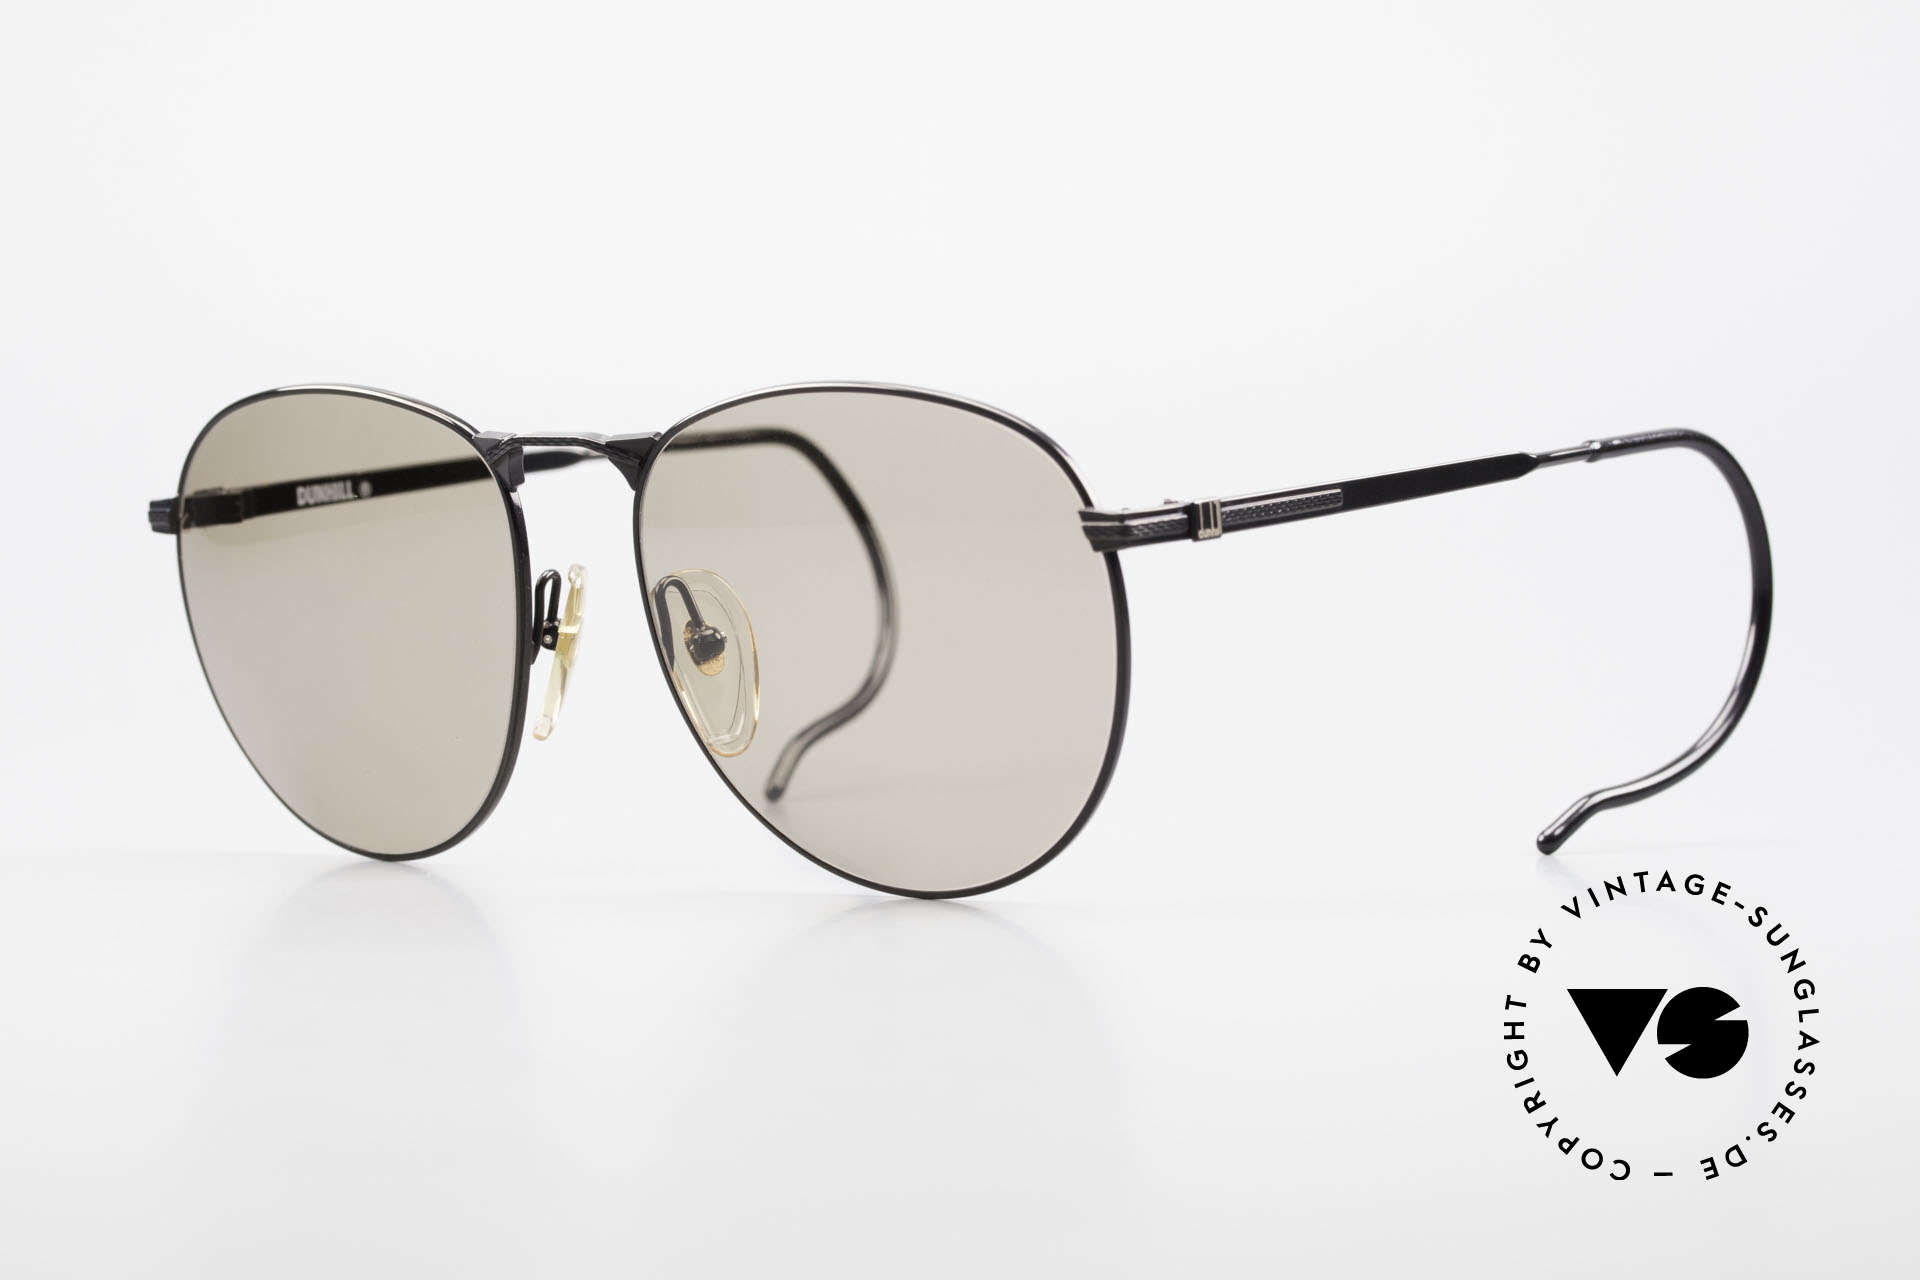 Dunhill 6044 80's Panto Style Sunglasses, extremely noble A. DUNHILL sunglasses for men, Made for Men